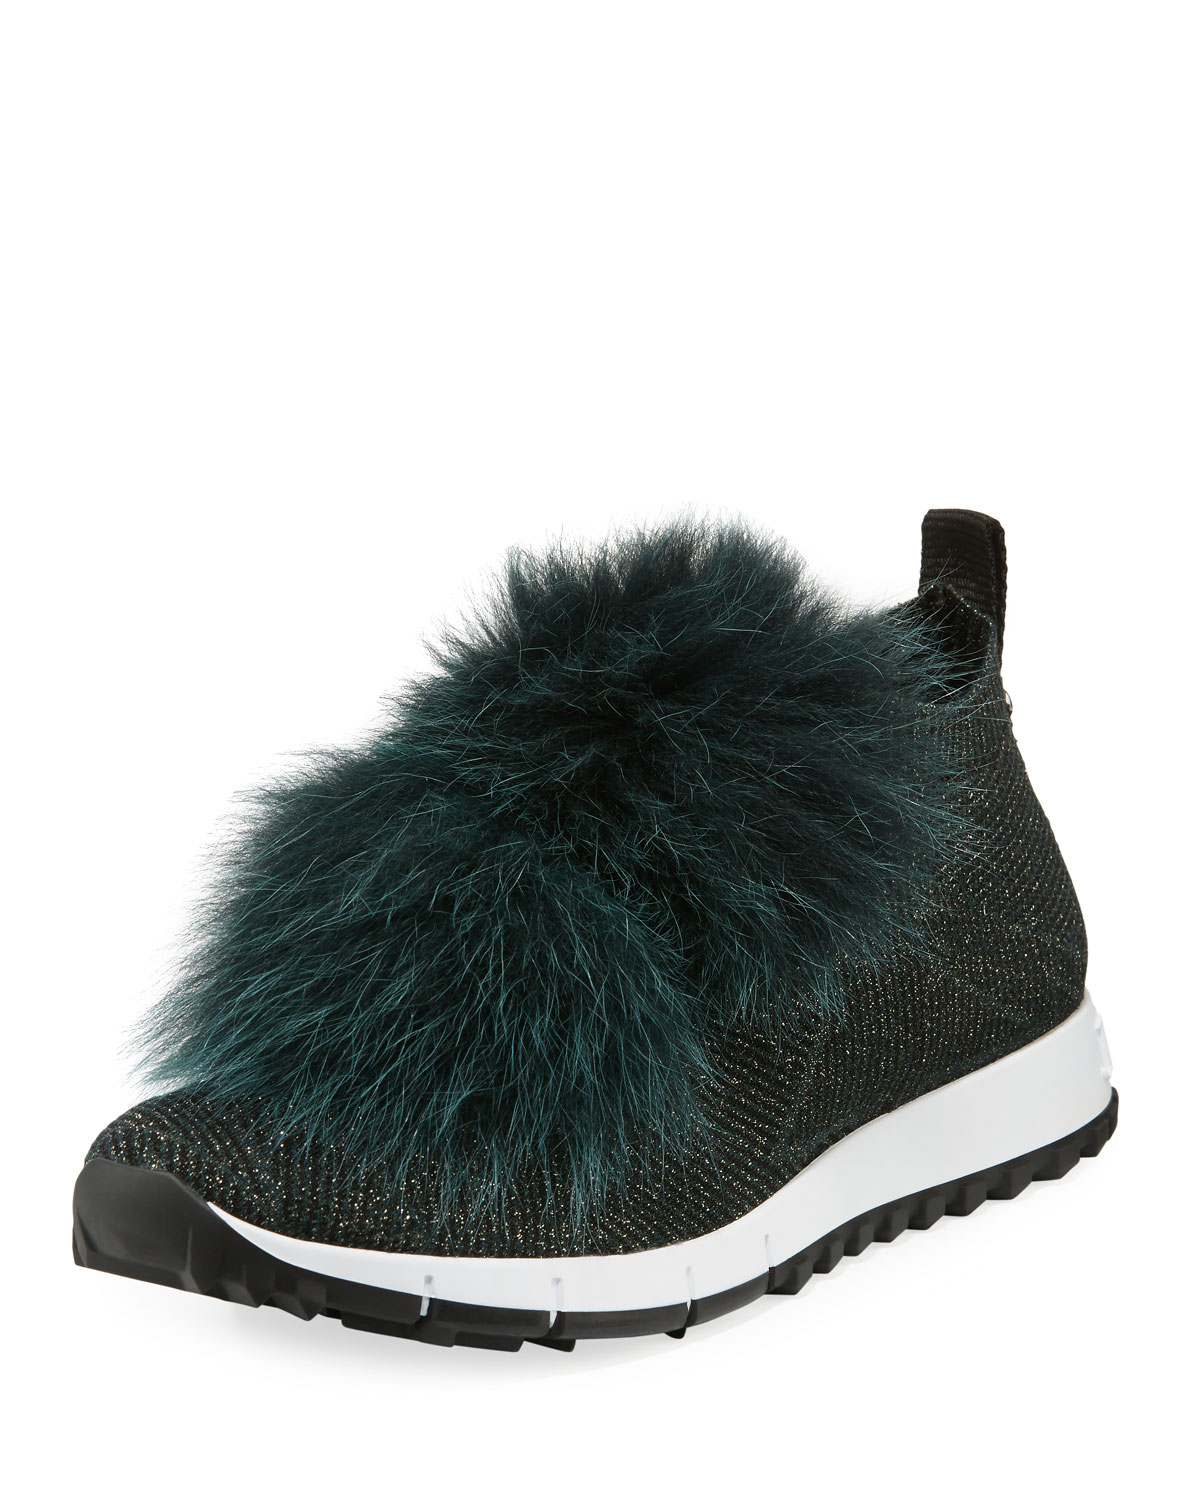 6c1099109432 Jimmy Choo Norway Trainer Sneaker with Fur Pompom